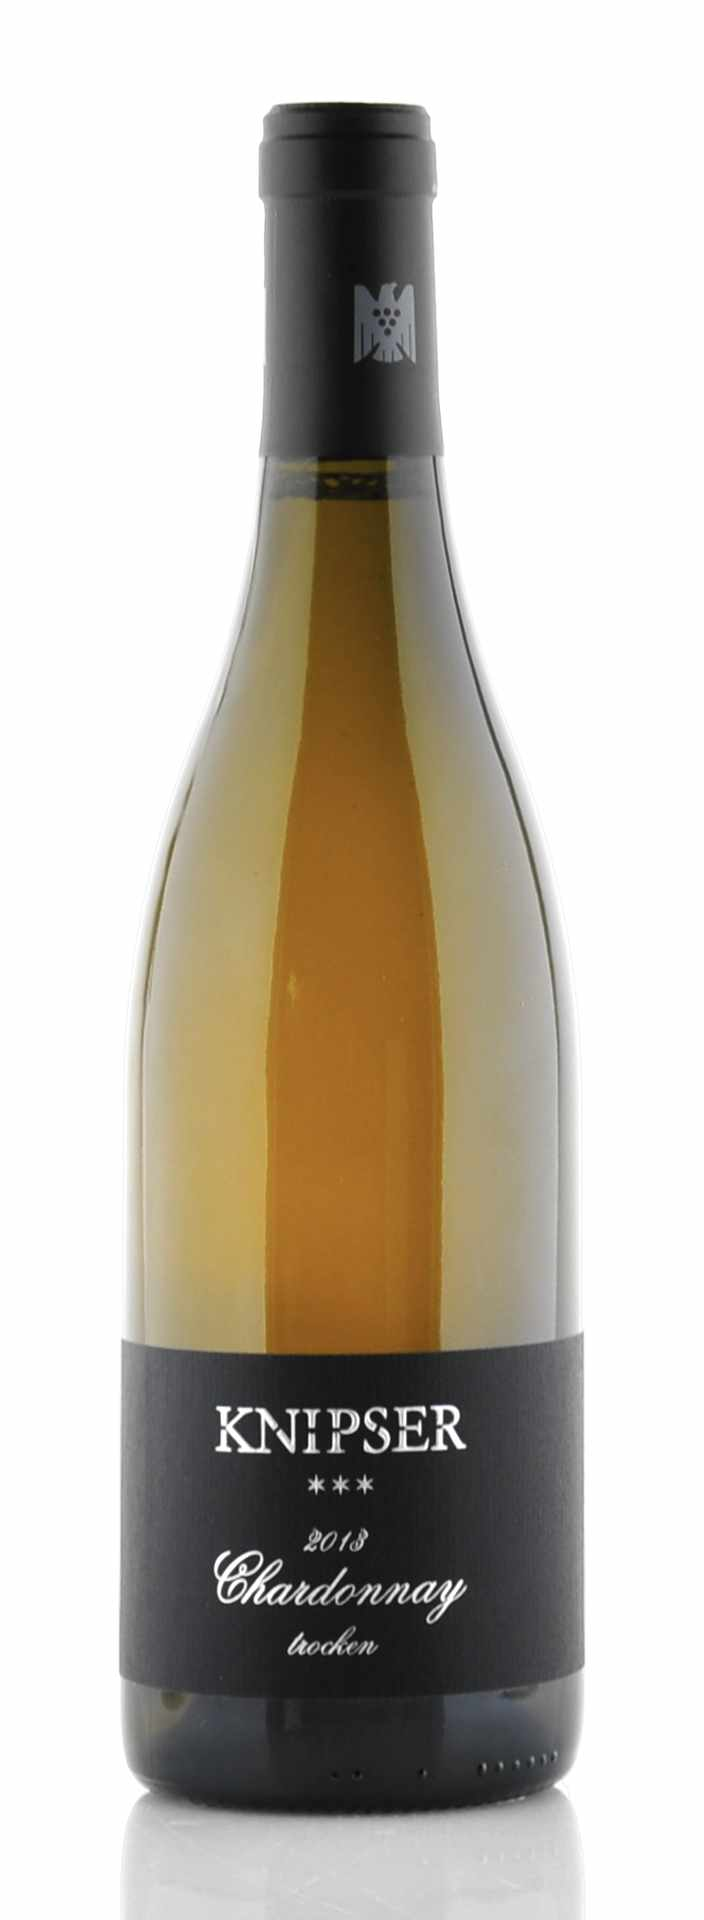 Knipser Chardonnay Barrique dry